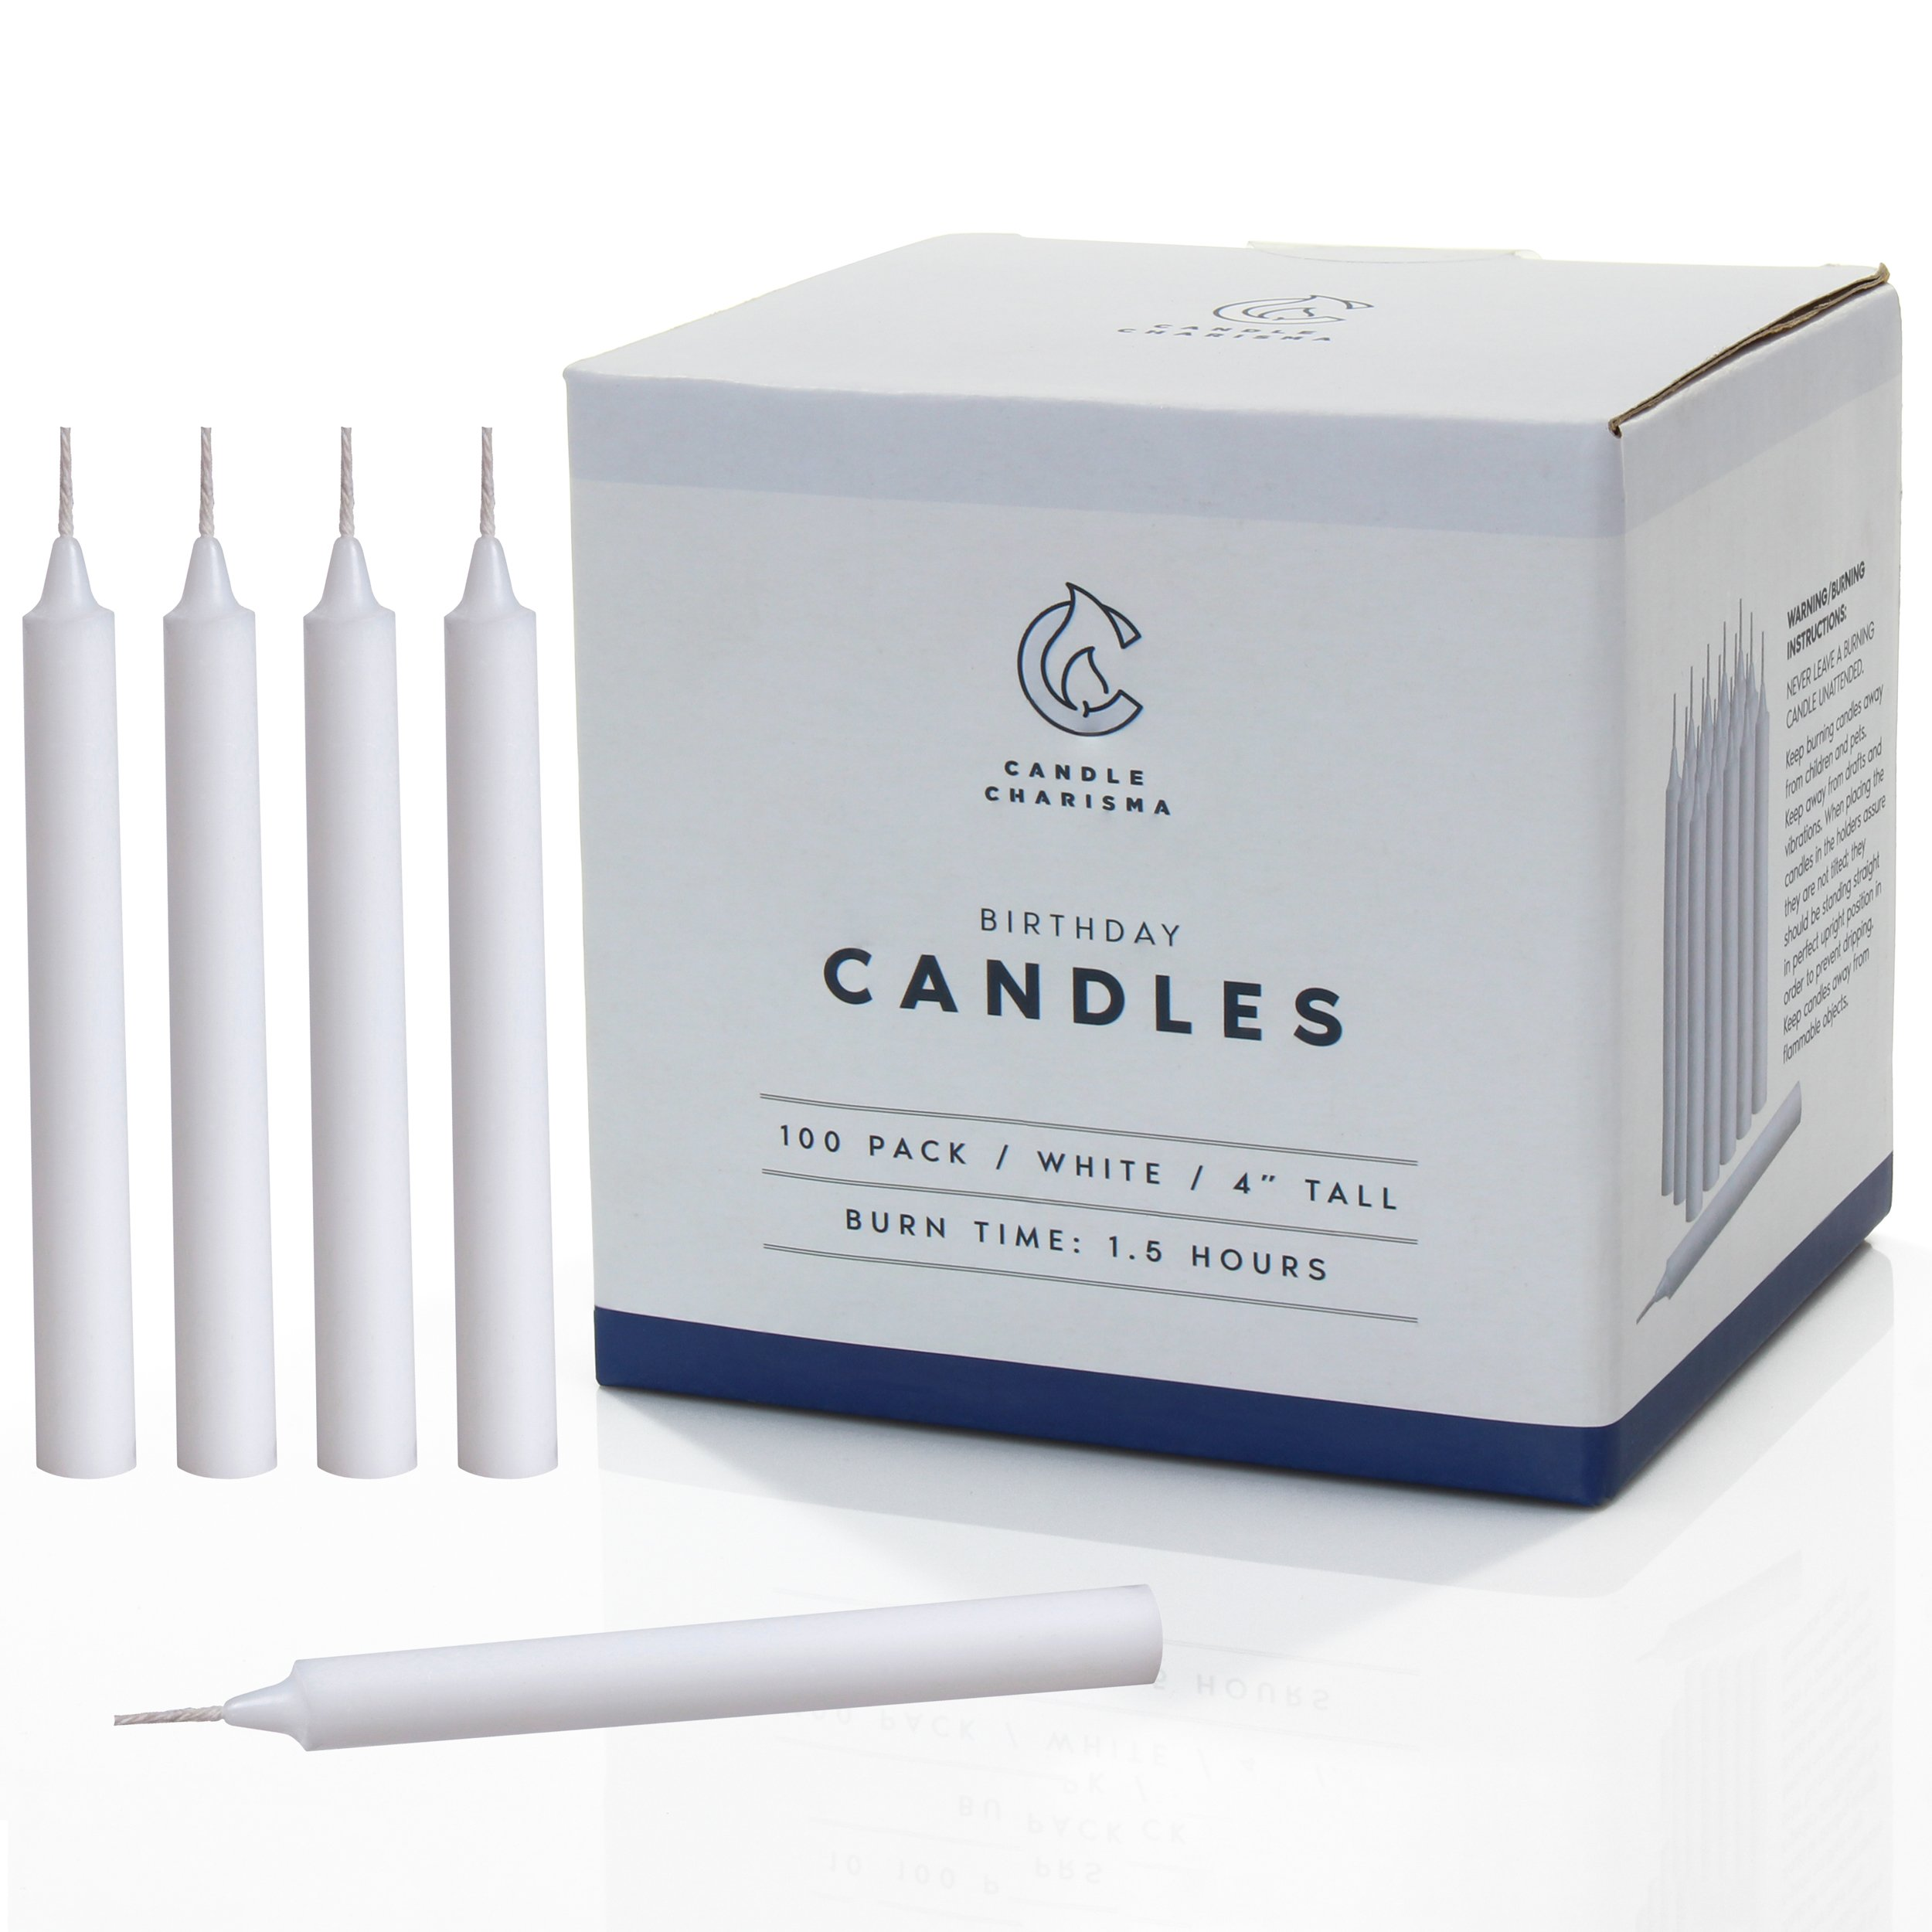 White Small Chime Candles Mini - for Candlelight Service Spells, Birthday, Holiday Gifting, Party - 4 Inch Tall - 1.5 Hour Burn Time - Bulk Set of 100